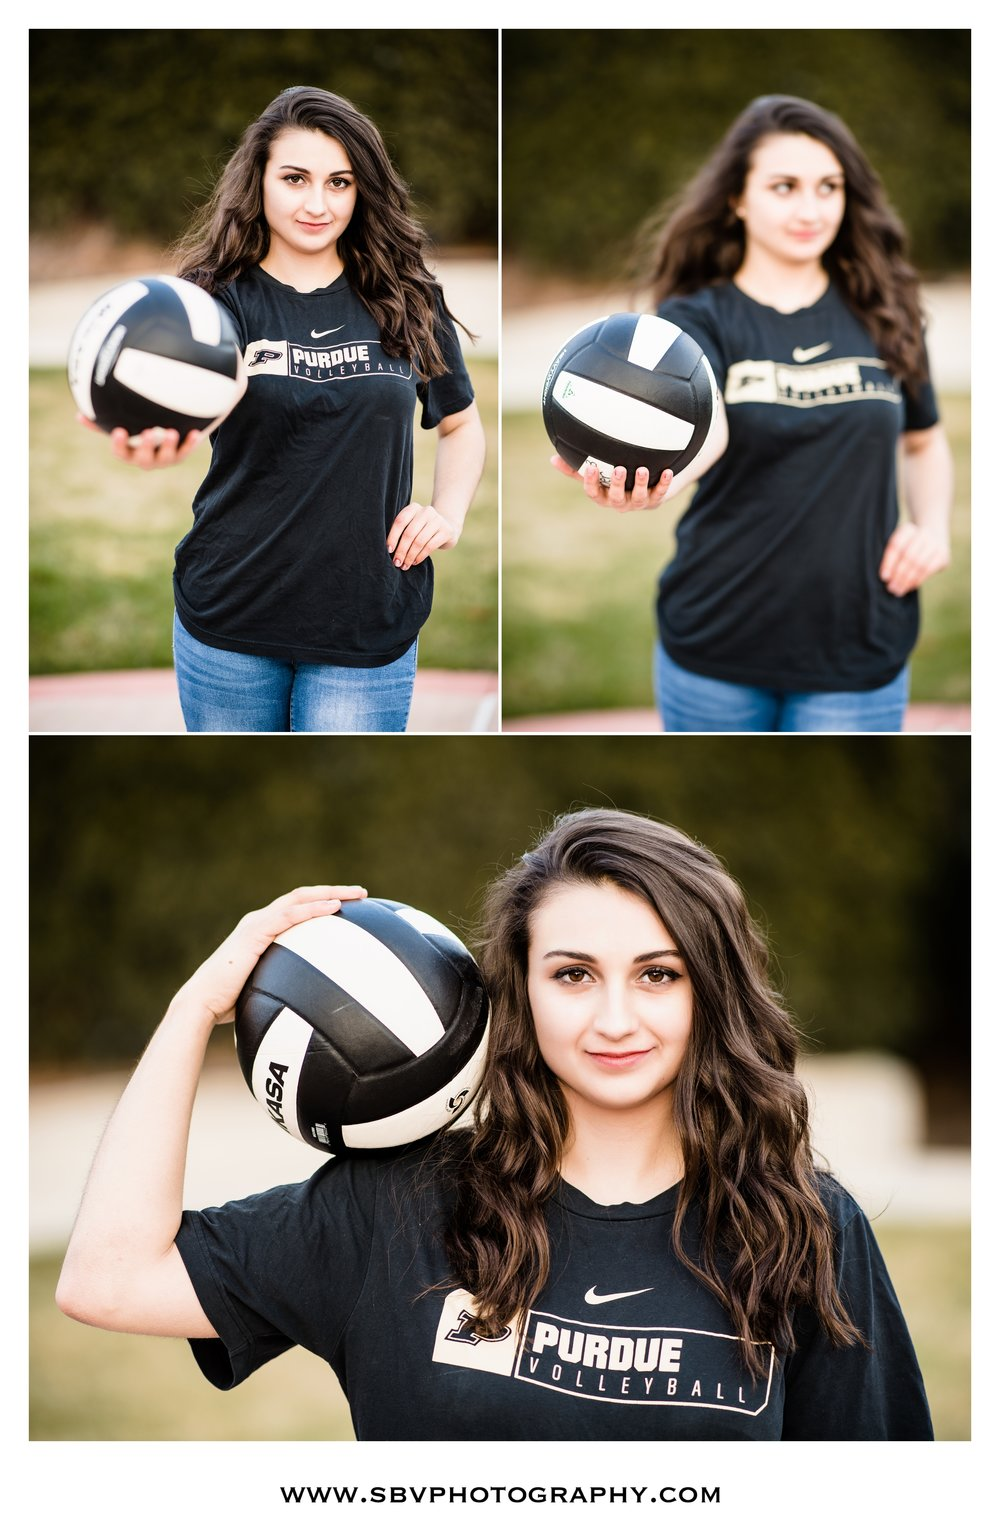 Senior portraits featuring Purdue volleyball.